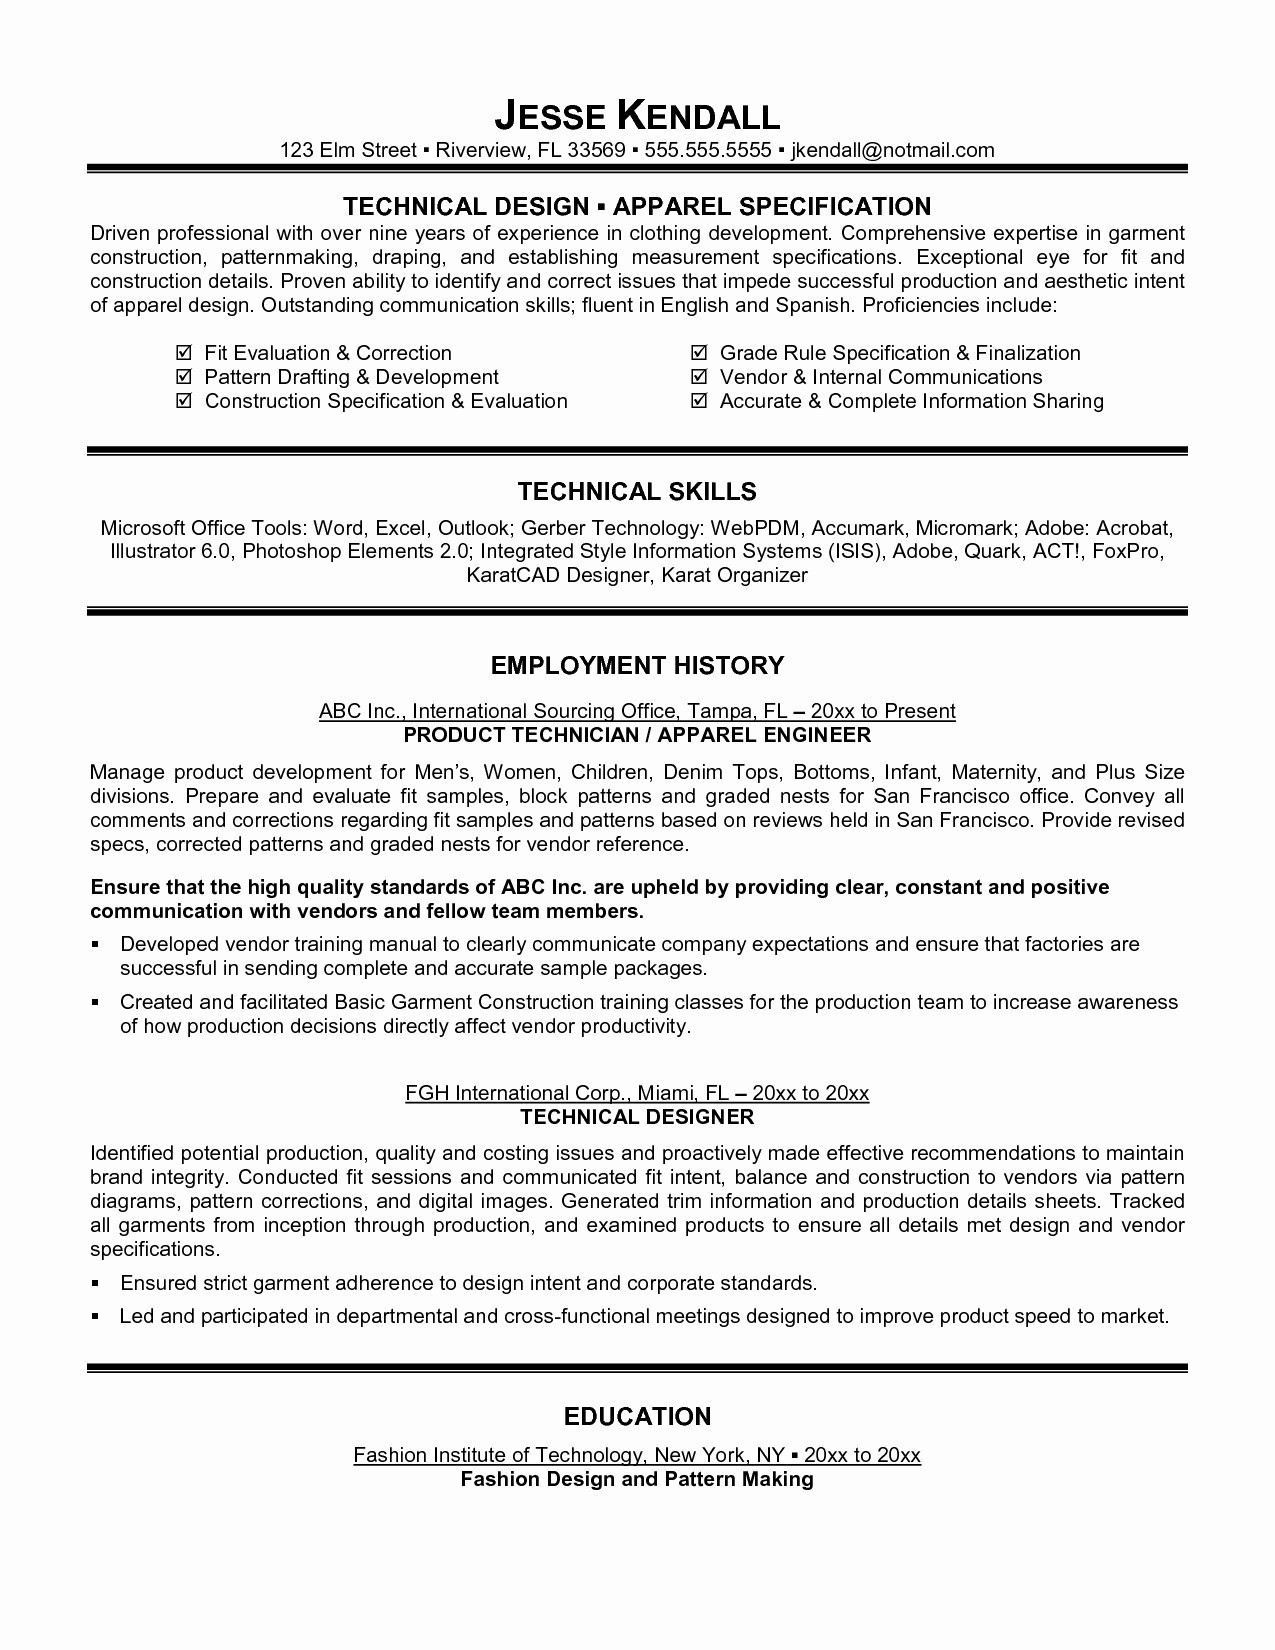 10 technology resume template word ideas